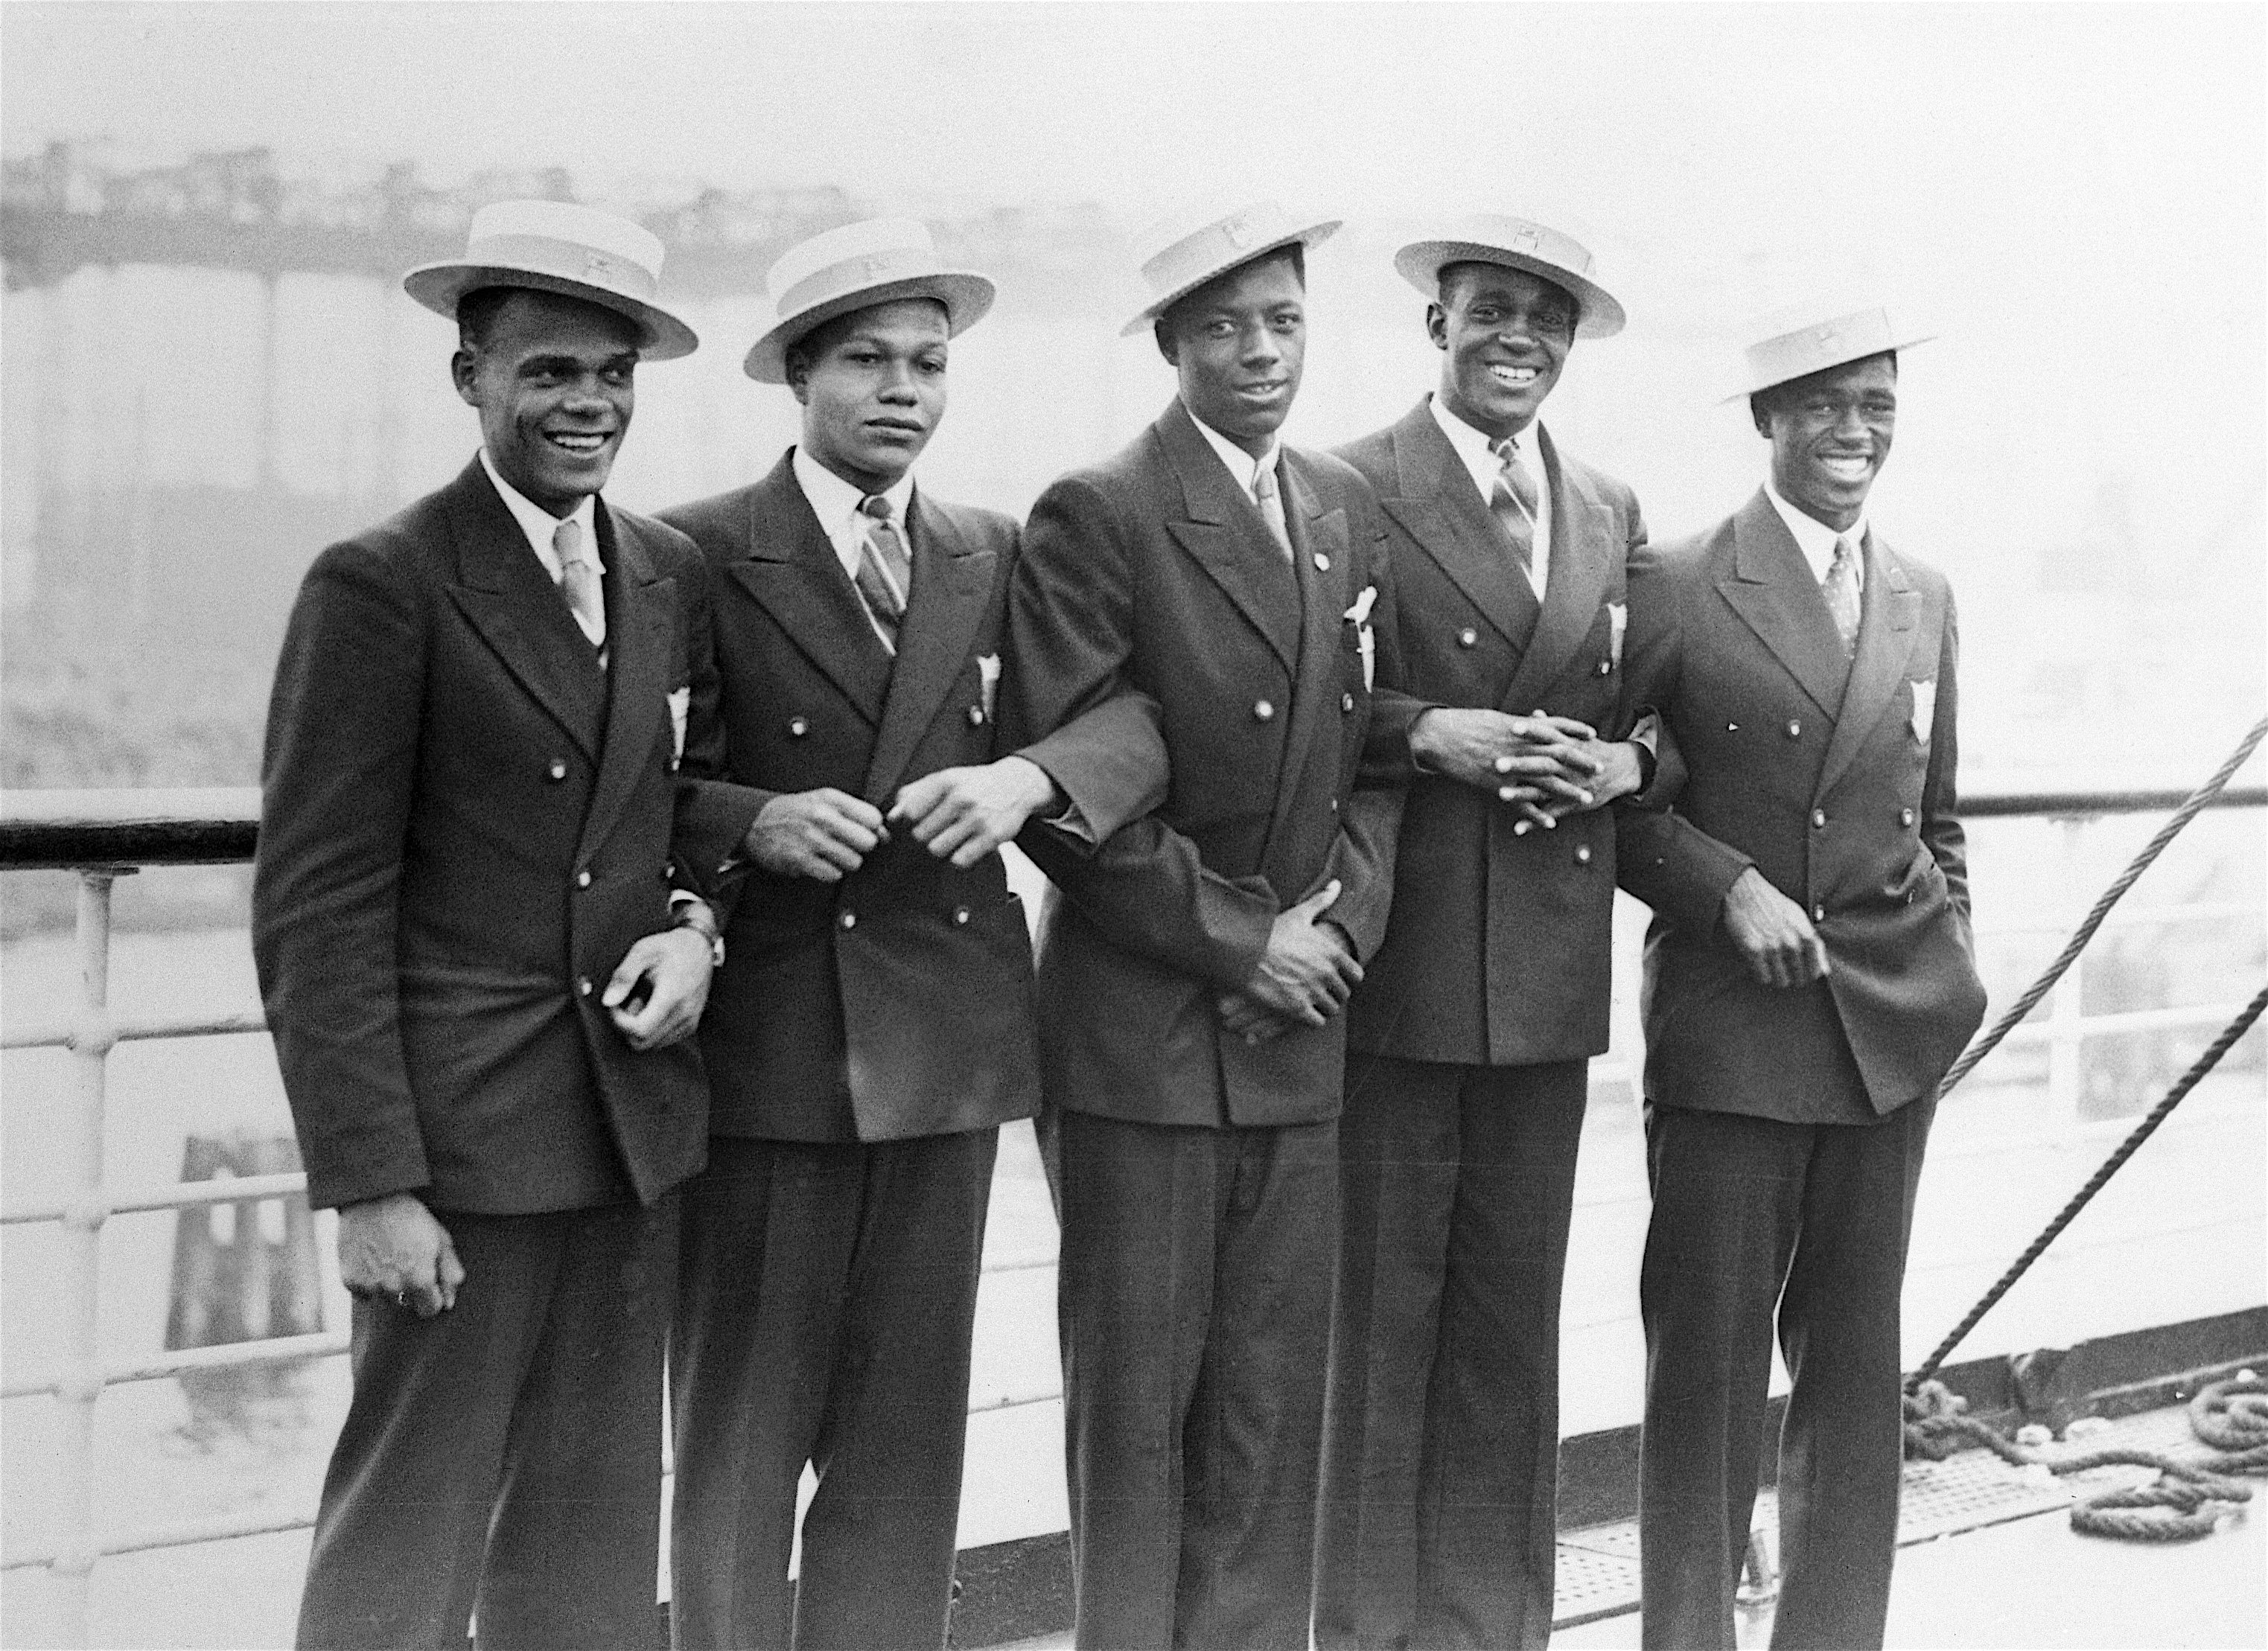 31 Jul 1936, Hamburg, Germany --- Original caption: Athletes on Uncle Sam's Olympic team are pictured aboard the S.S. Manhattan upon arrival at Hamburg. Left to right are Jimmy LuValle, Archie Williams, John Woodruff, Benjamin Johnson and Matthew Robinson. --- Image by © Bettmann/CORBIS